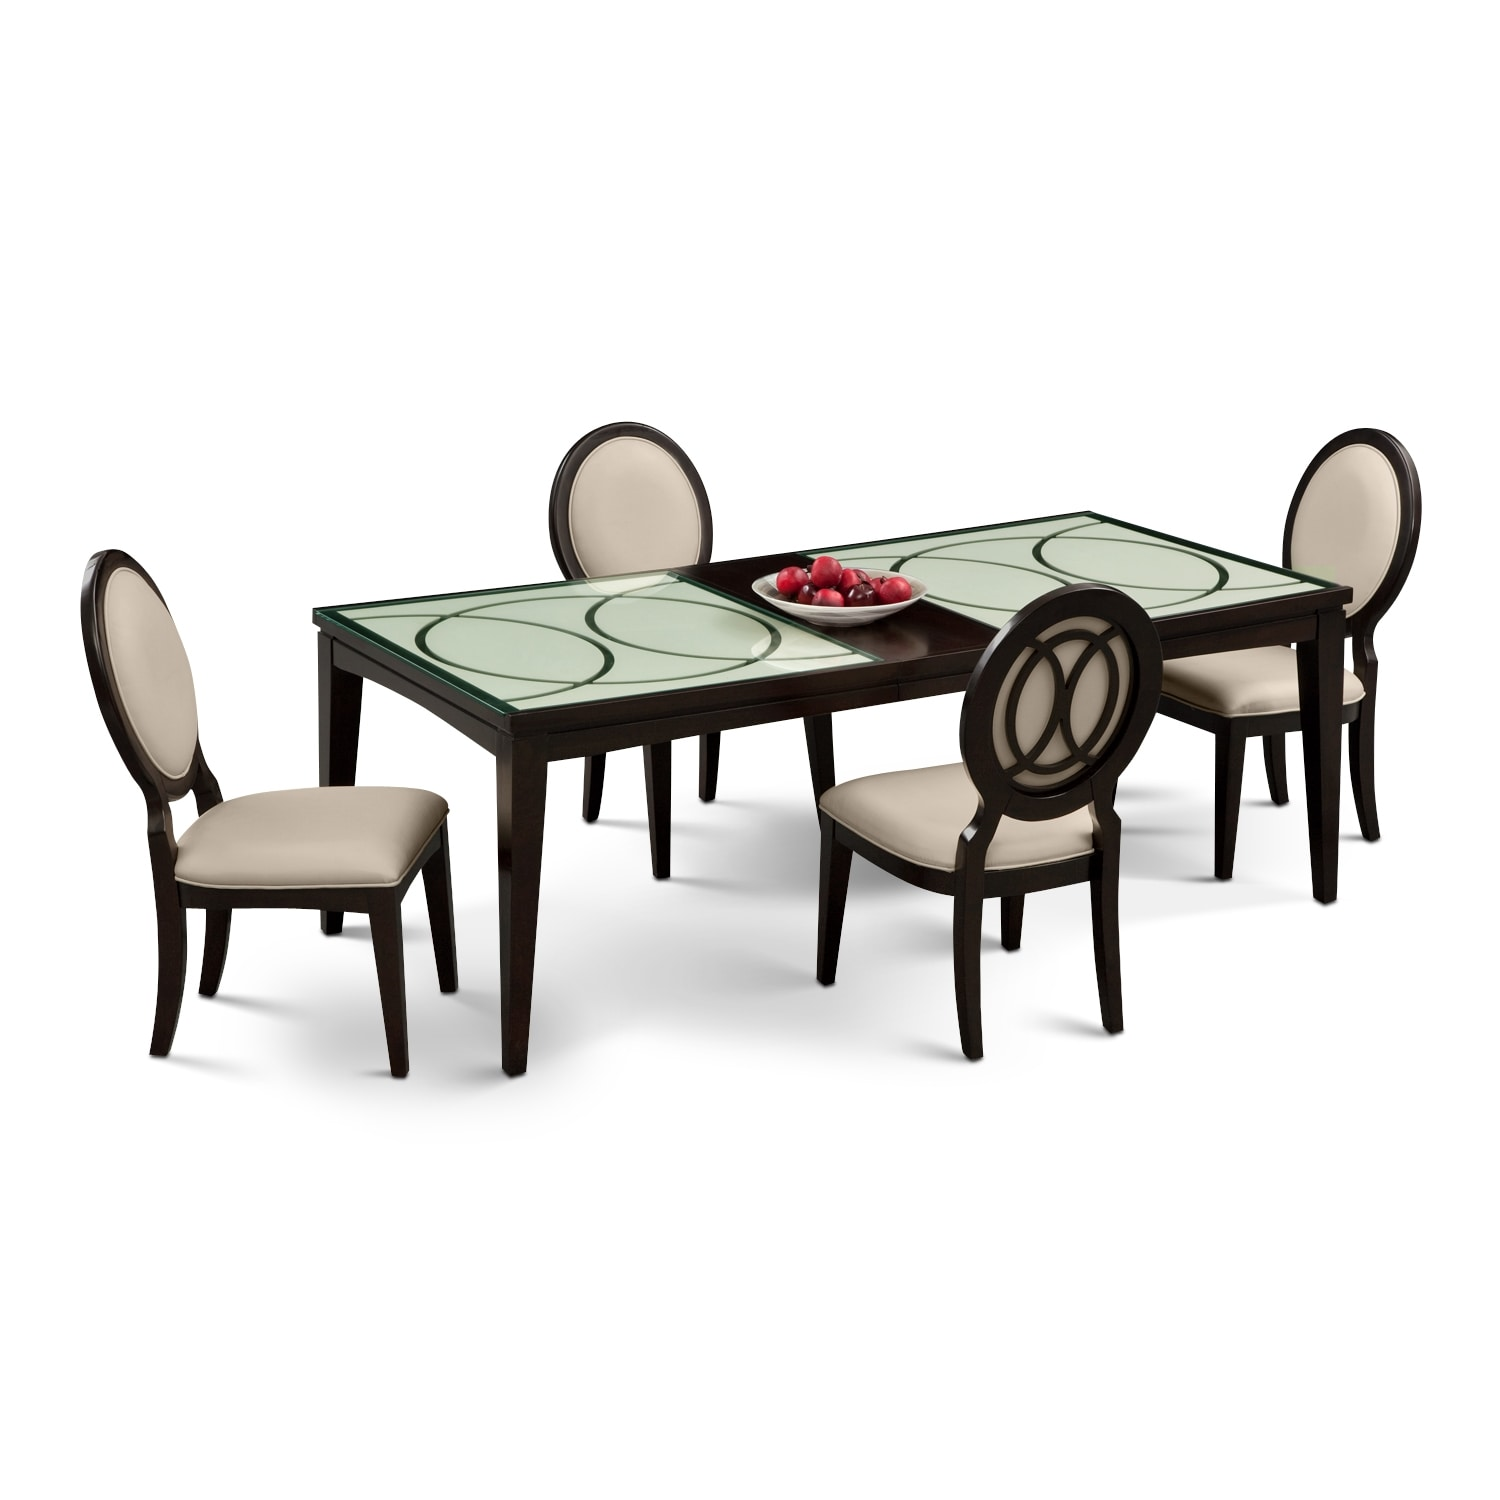 Ordinaire Cosmo Table And 4 Chairs   Merlot